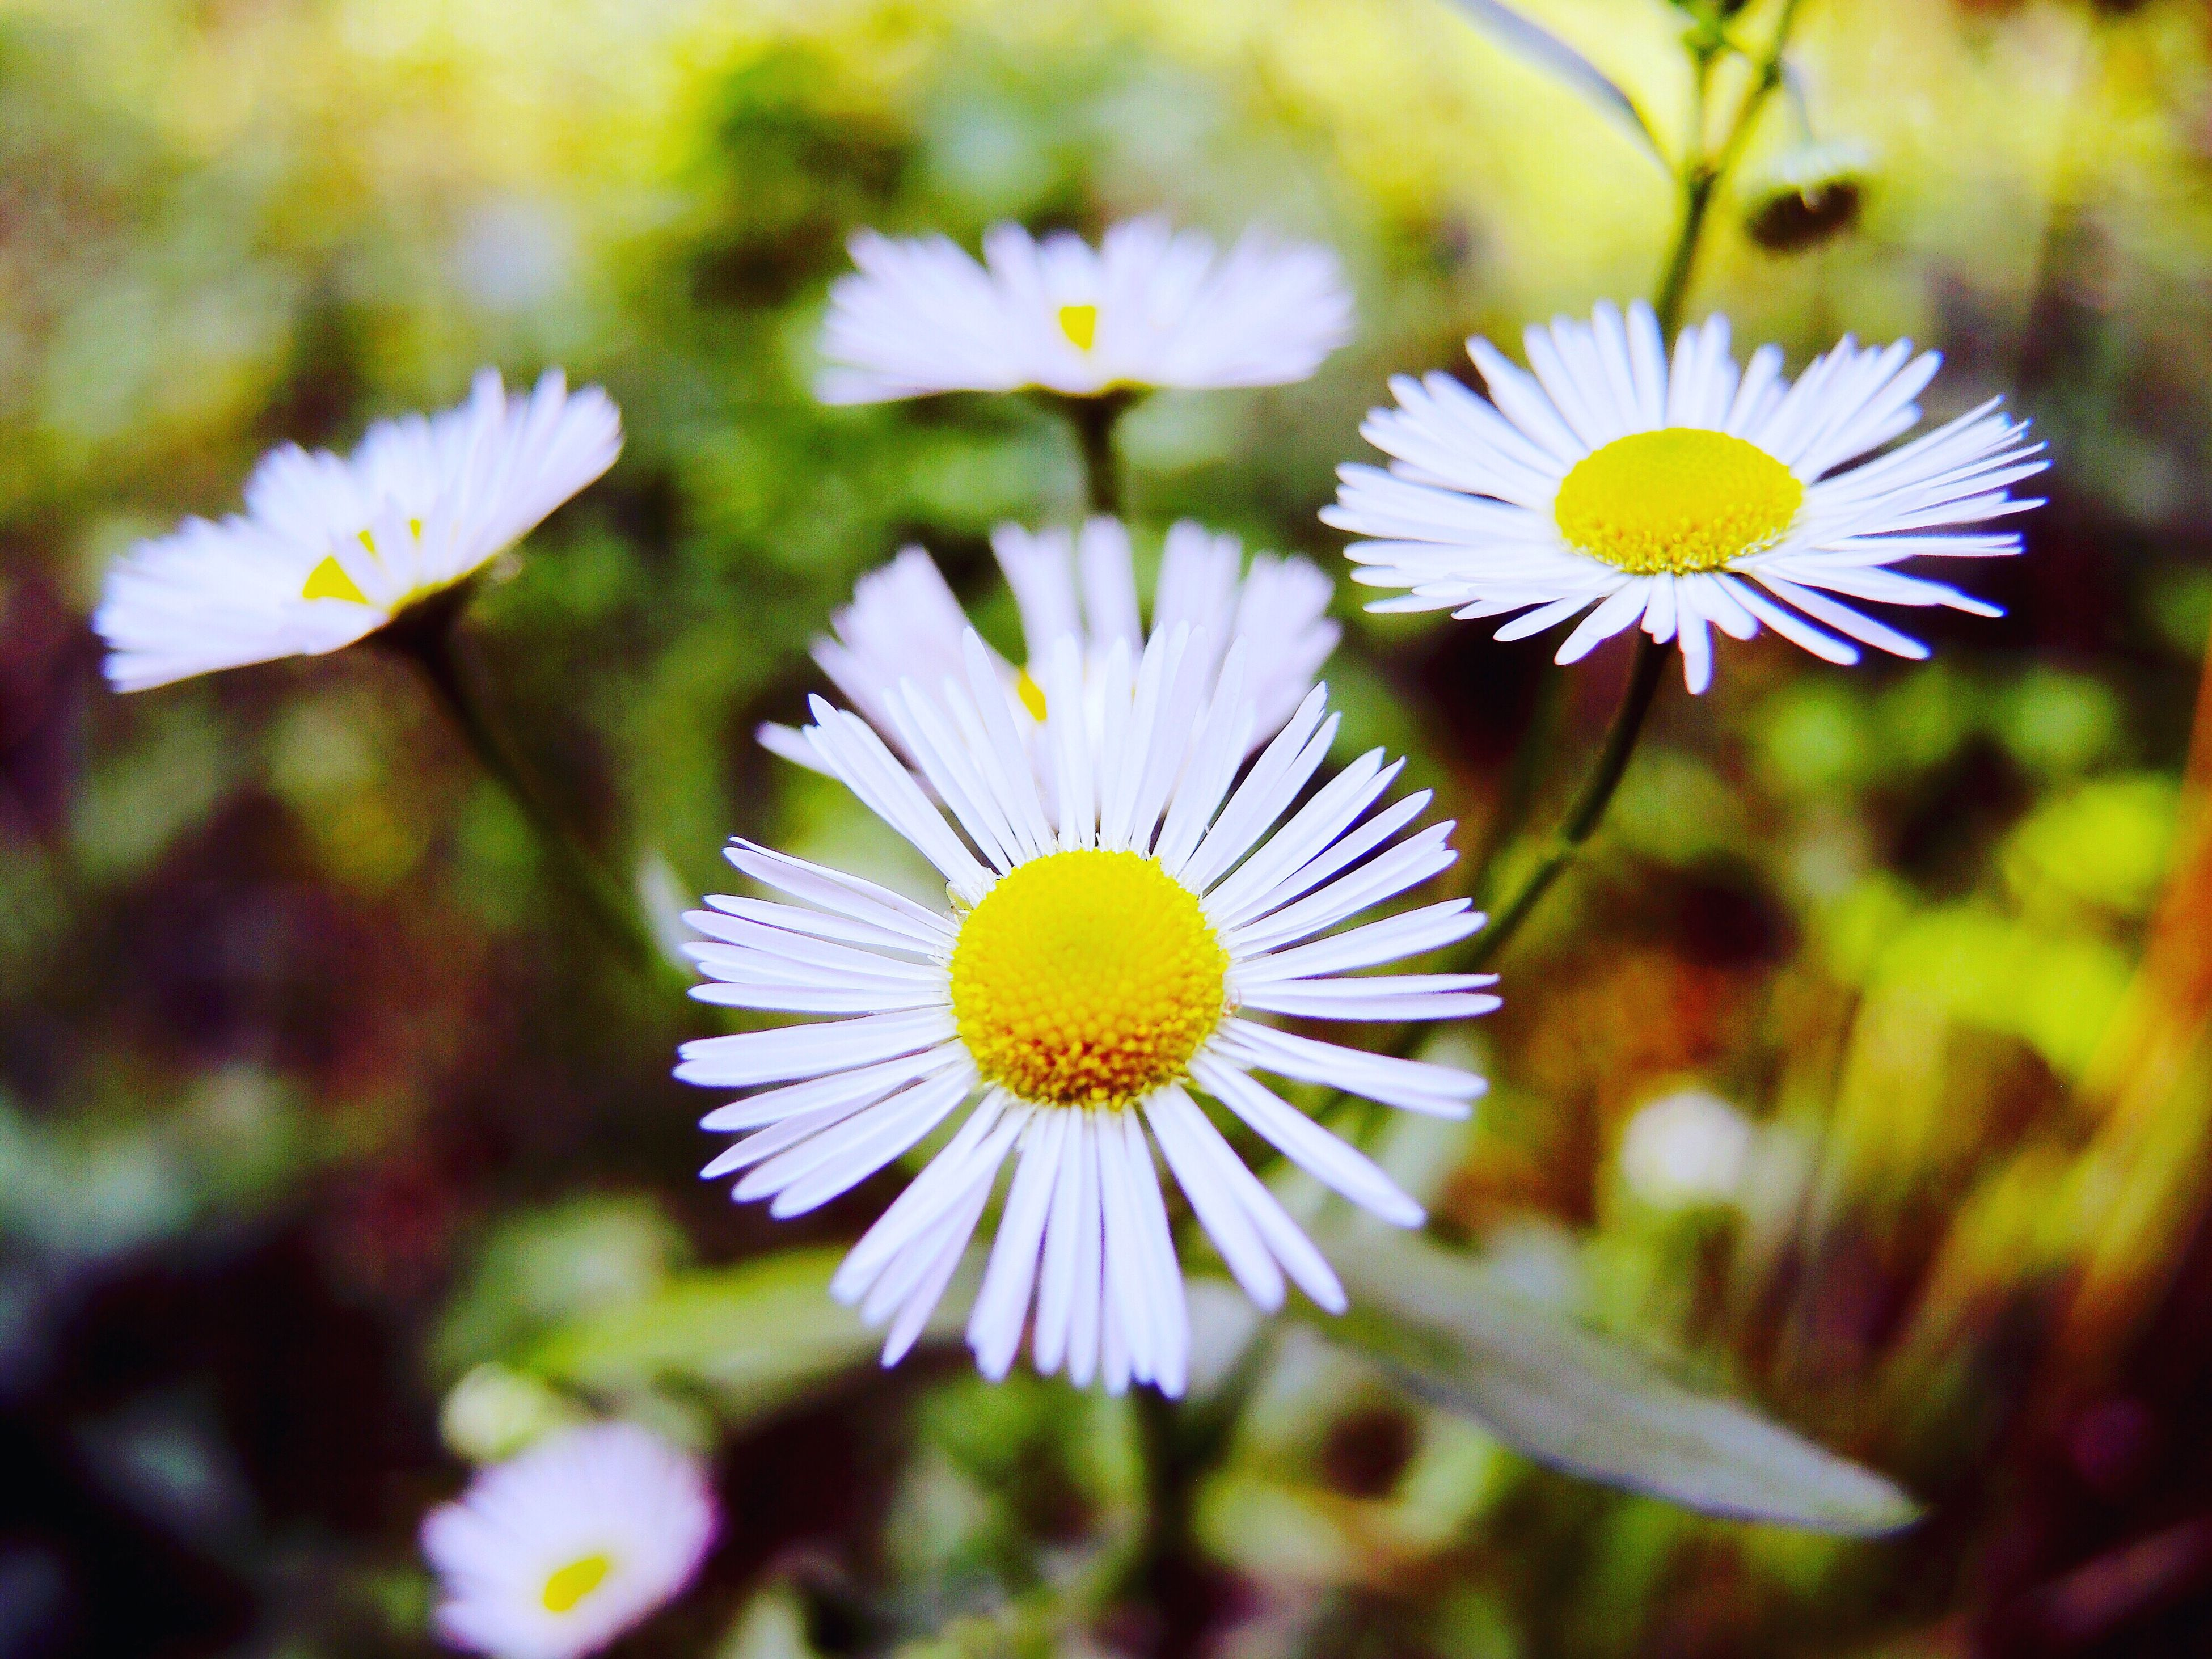 flower, freshness, fragility, daisy, flower head, petal, growth, beauty in nature, white color, close-up, season, springtime, nature, blossom, stem, in bloom, stamen, selective focus, plant, pollen, botany, daisies, focus on foreground, day, bloom, meadow, uncultivated, wildflower, blooming, no people, softness, growing